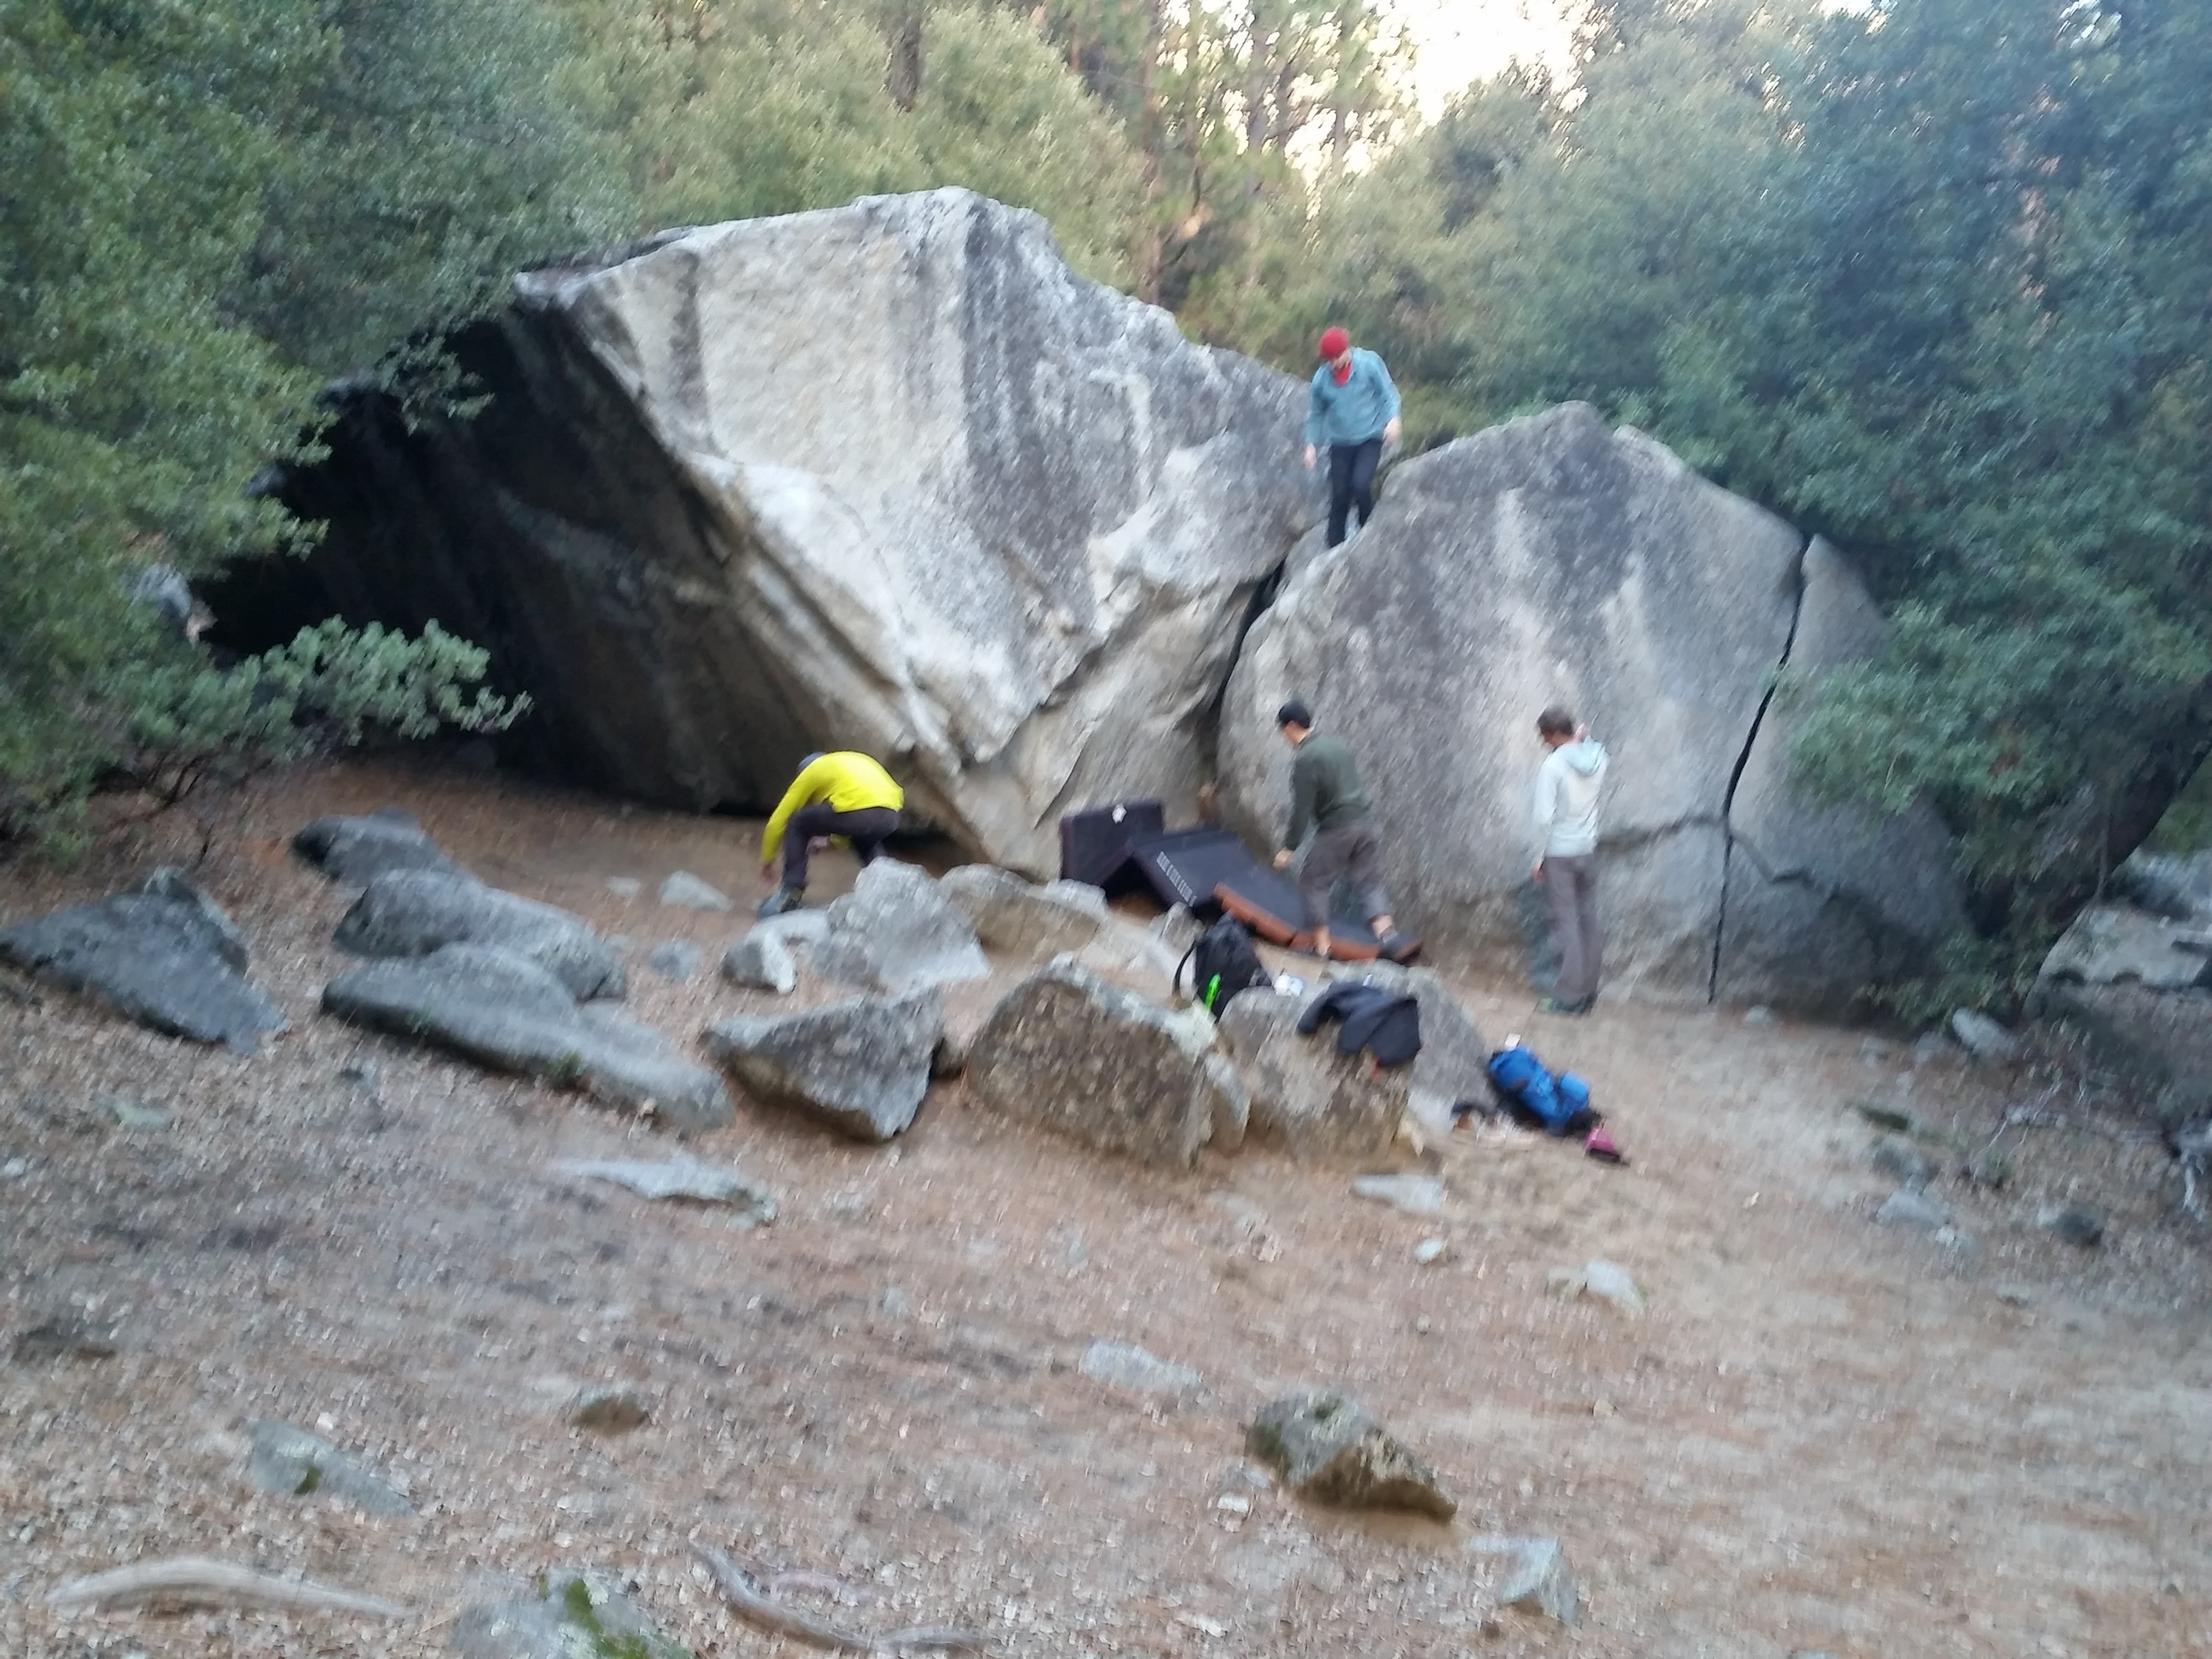 Nary a boulder was free of climbers, pads and gear.